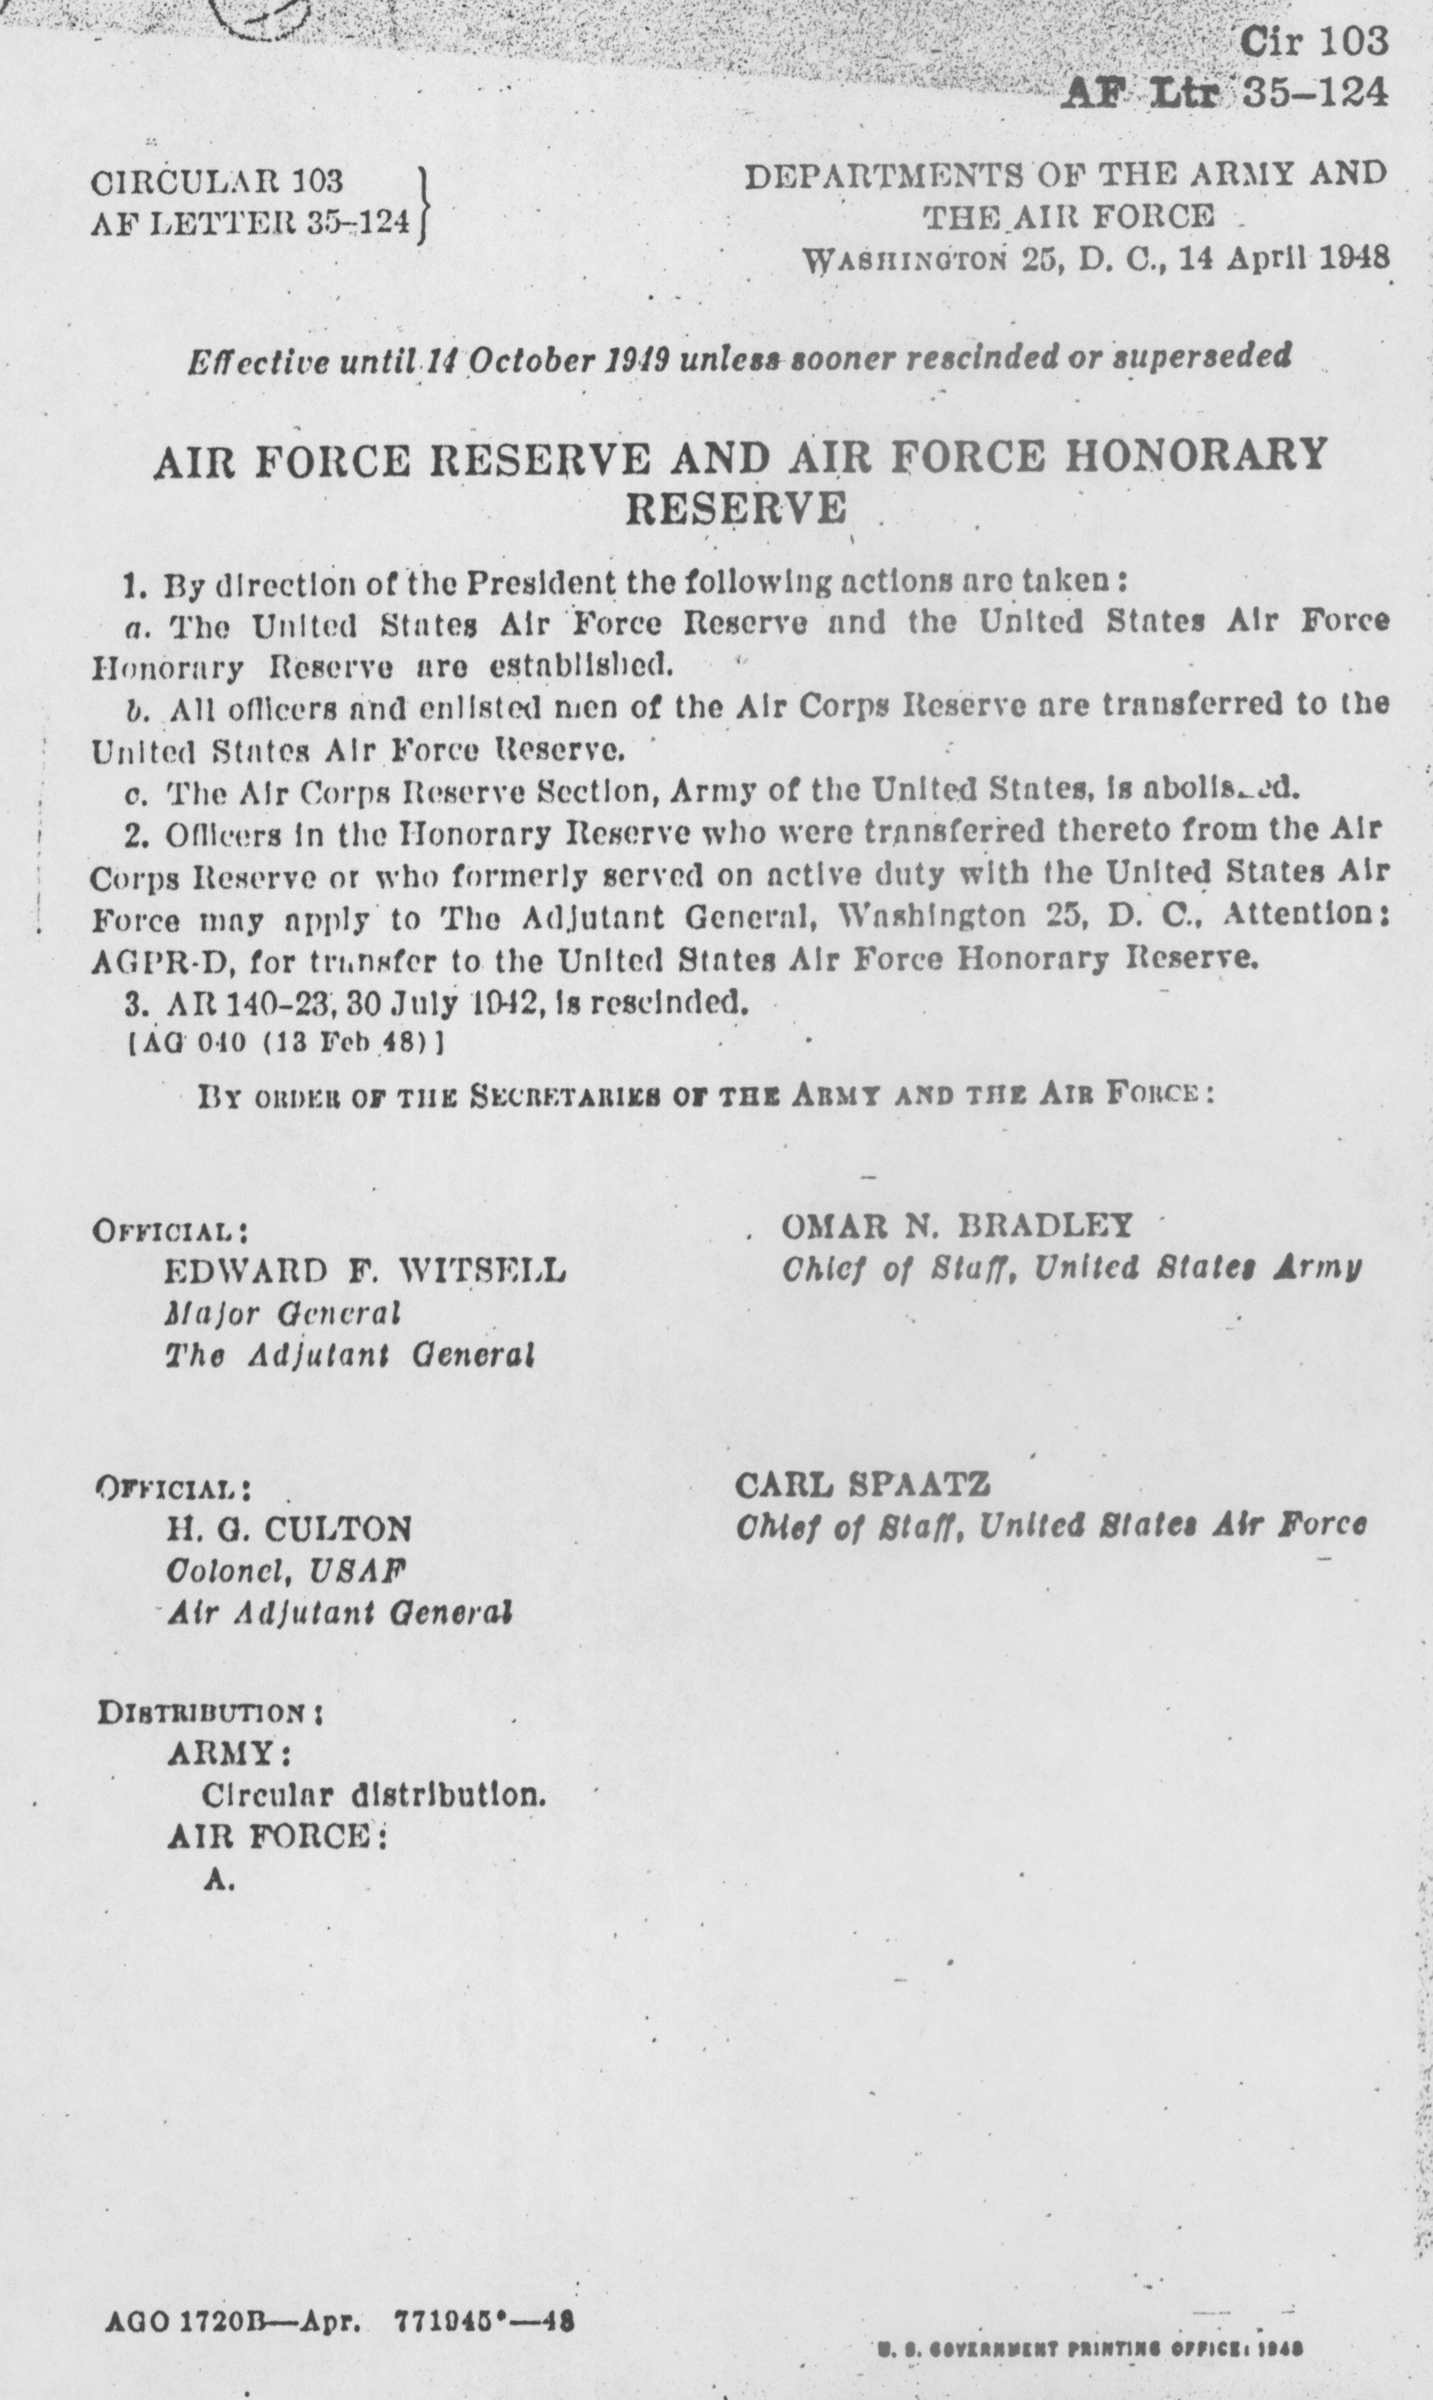 Originating document establishing the Air Force Reserve and Air Force Honorary Reserve,, April 14, 1948